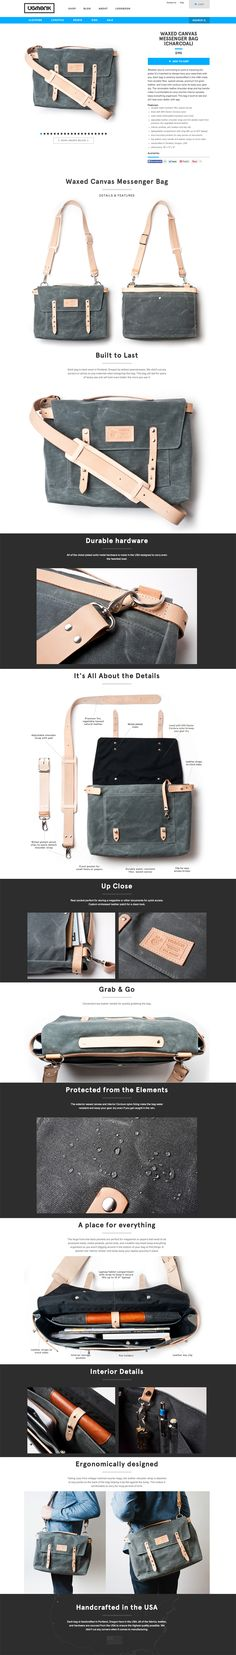 Waxed Canvas Messenger Bags by Jeff Sheldon